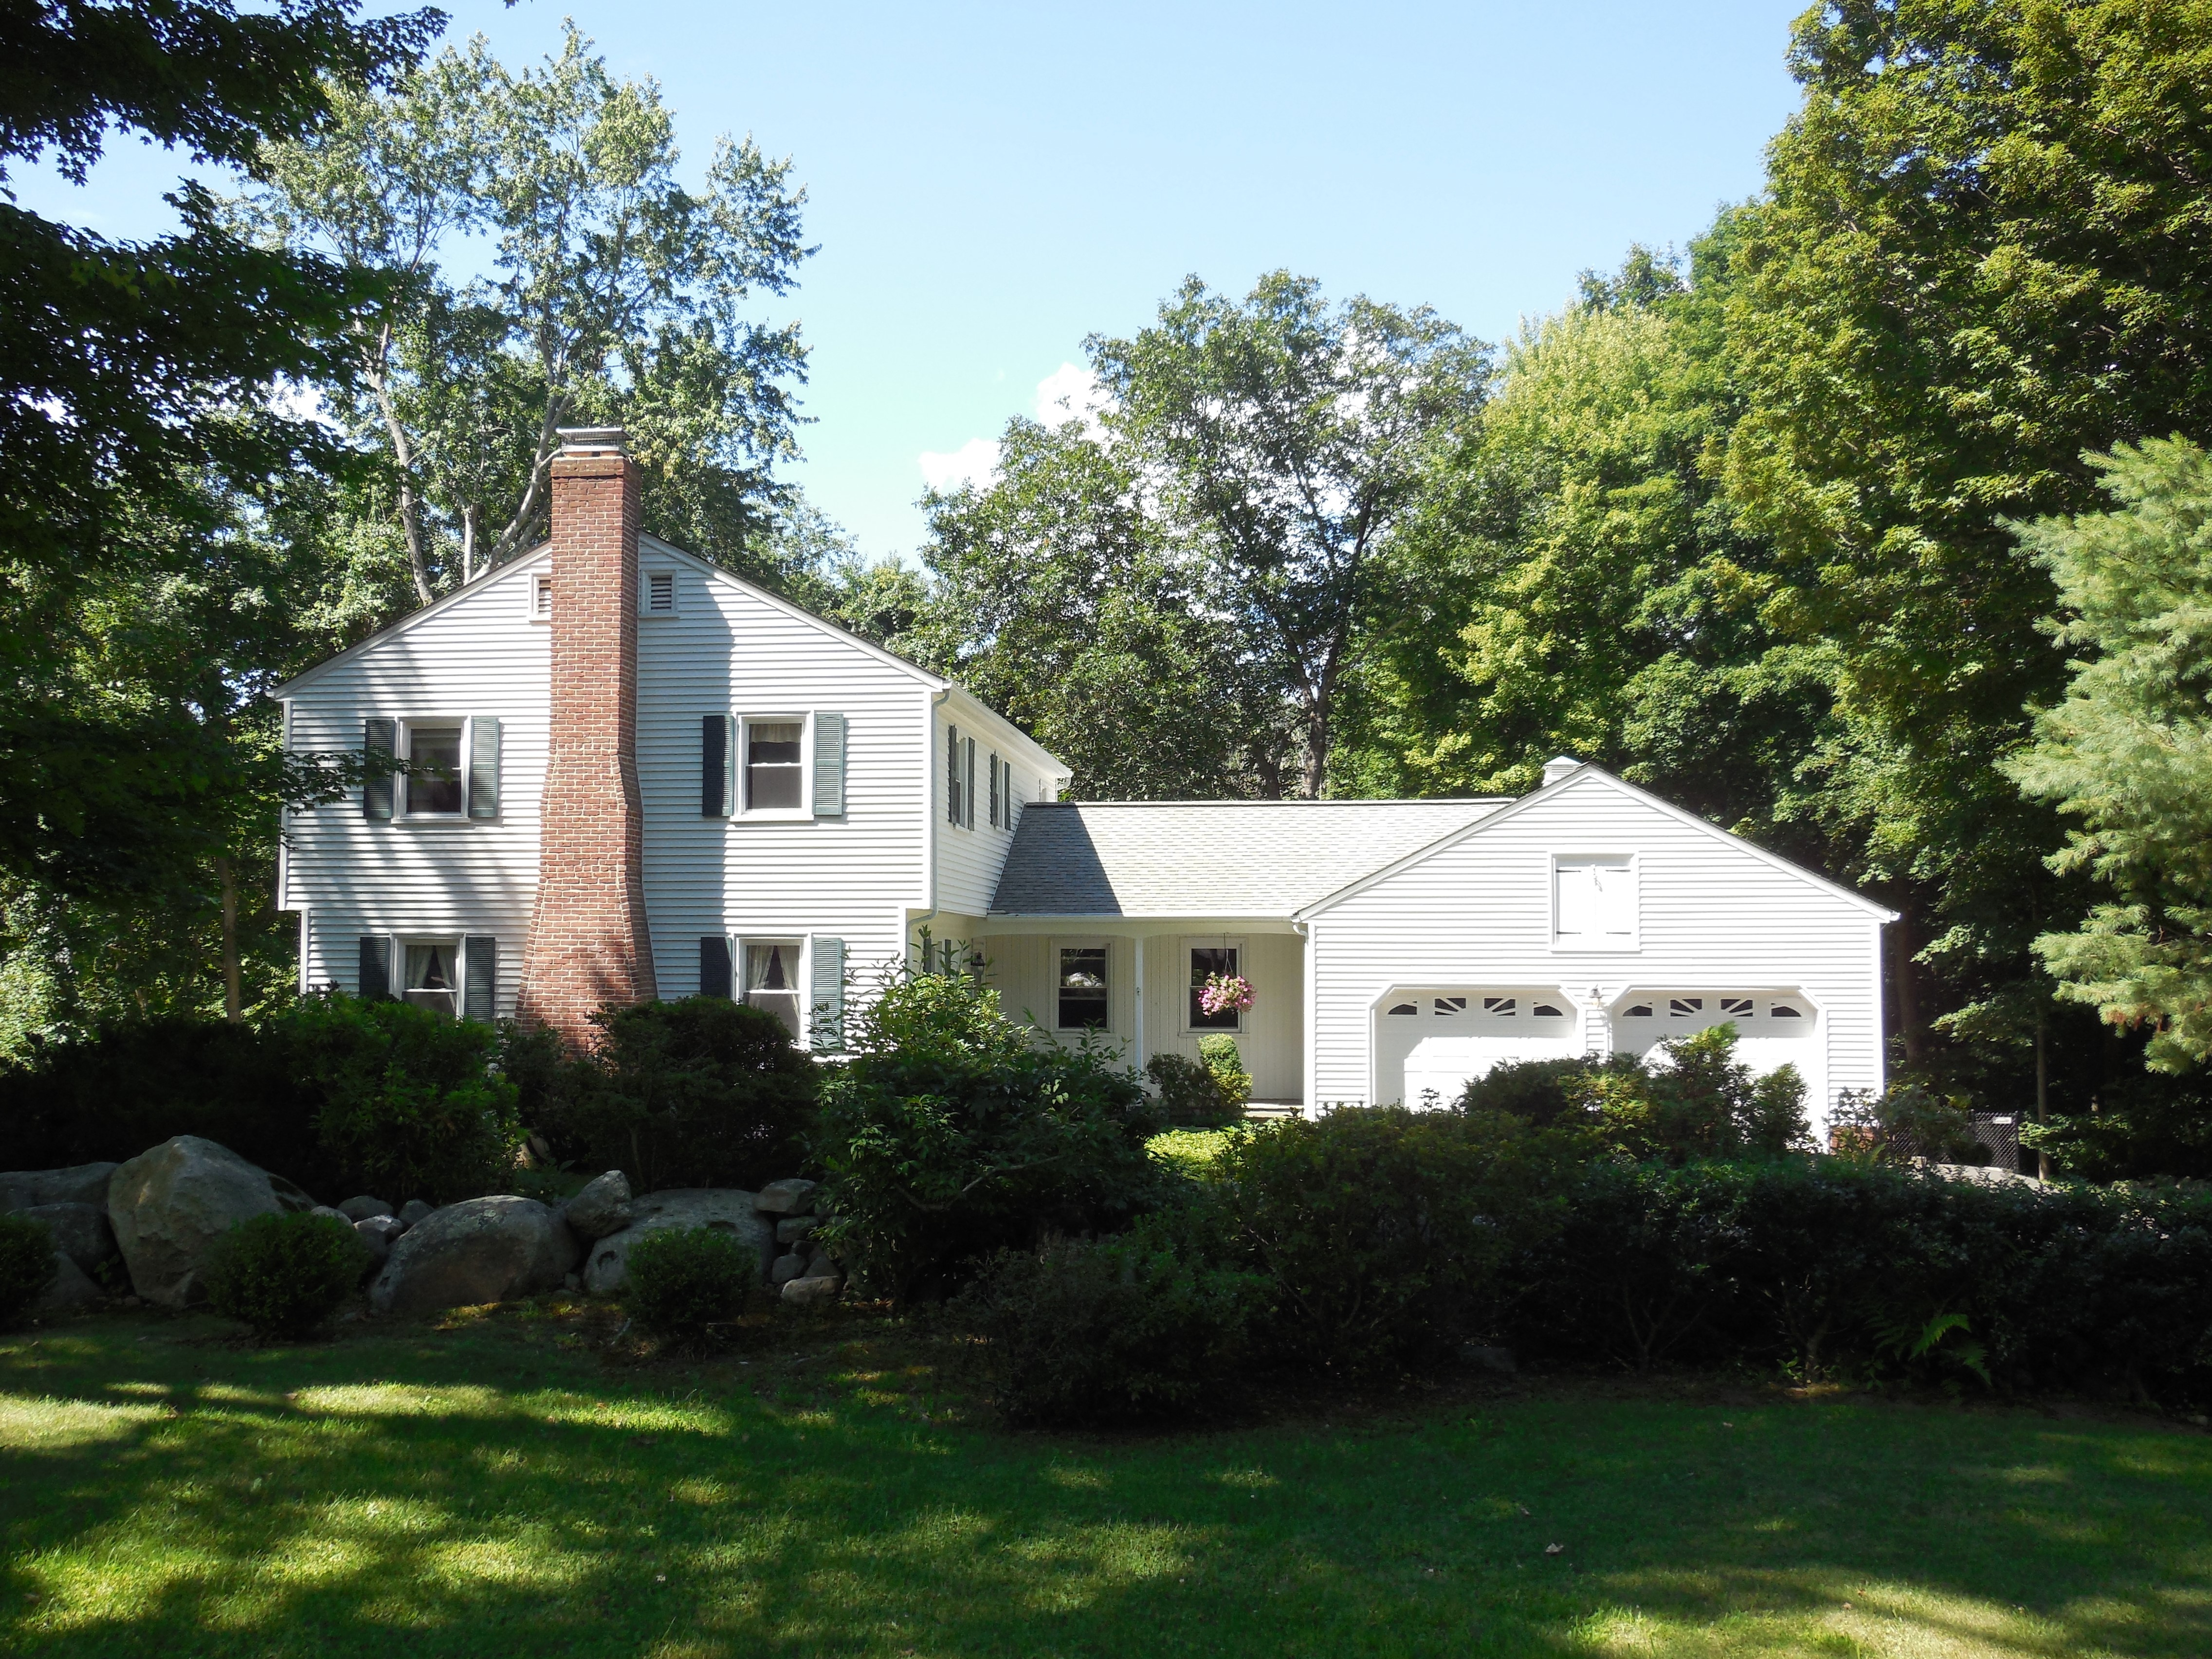 Single Family Home for Sale at Inviting Colonial 20 Pell Mell Drive Bethel, Connecticut, 06801 United States